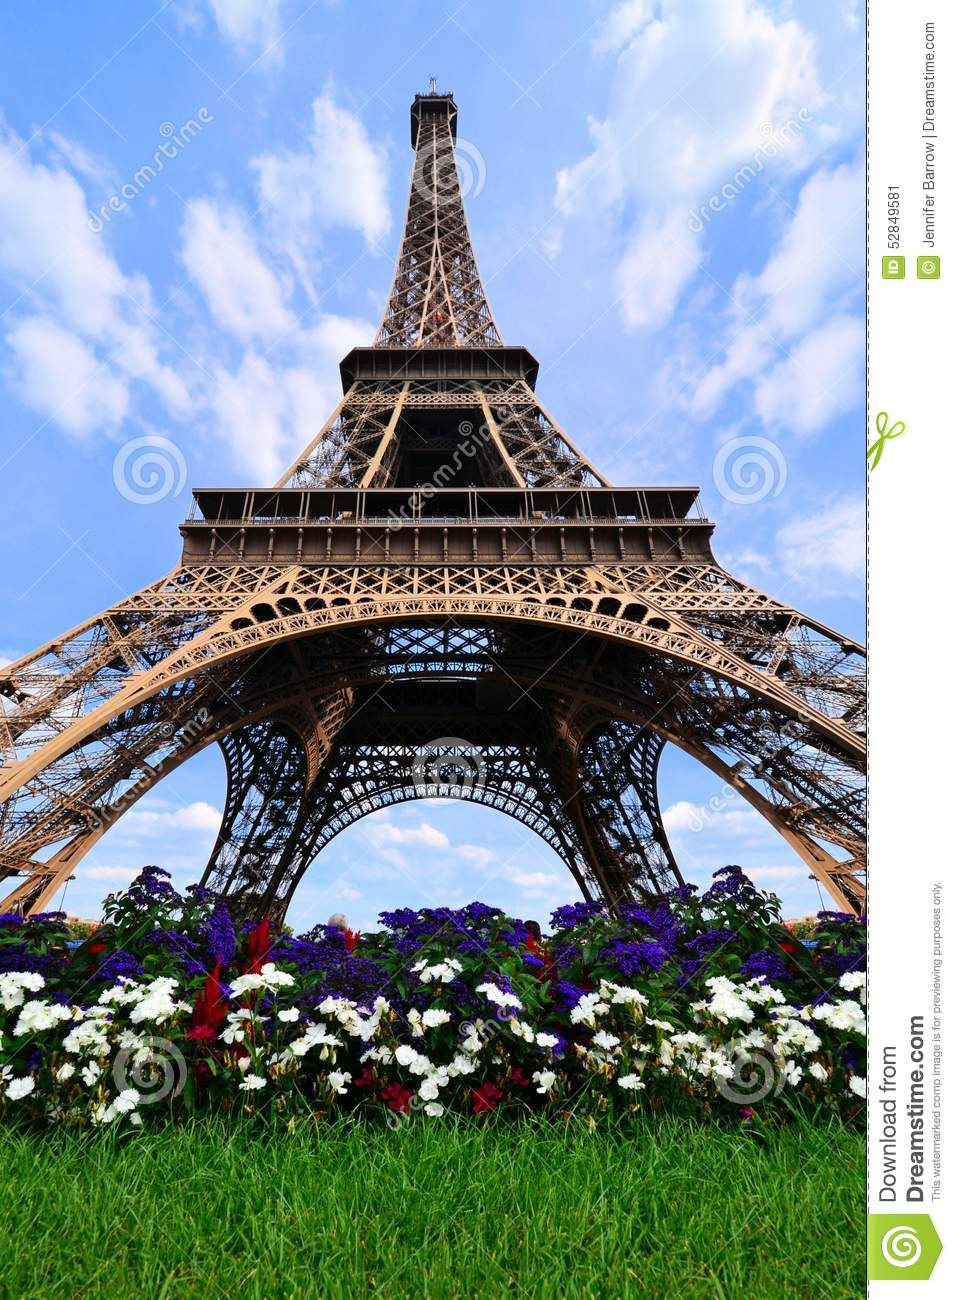 tour eiffel avec des fleurs paris france photo stock image 52849581. Black Bedroom Furniture Sets. Home Design Ideas